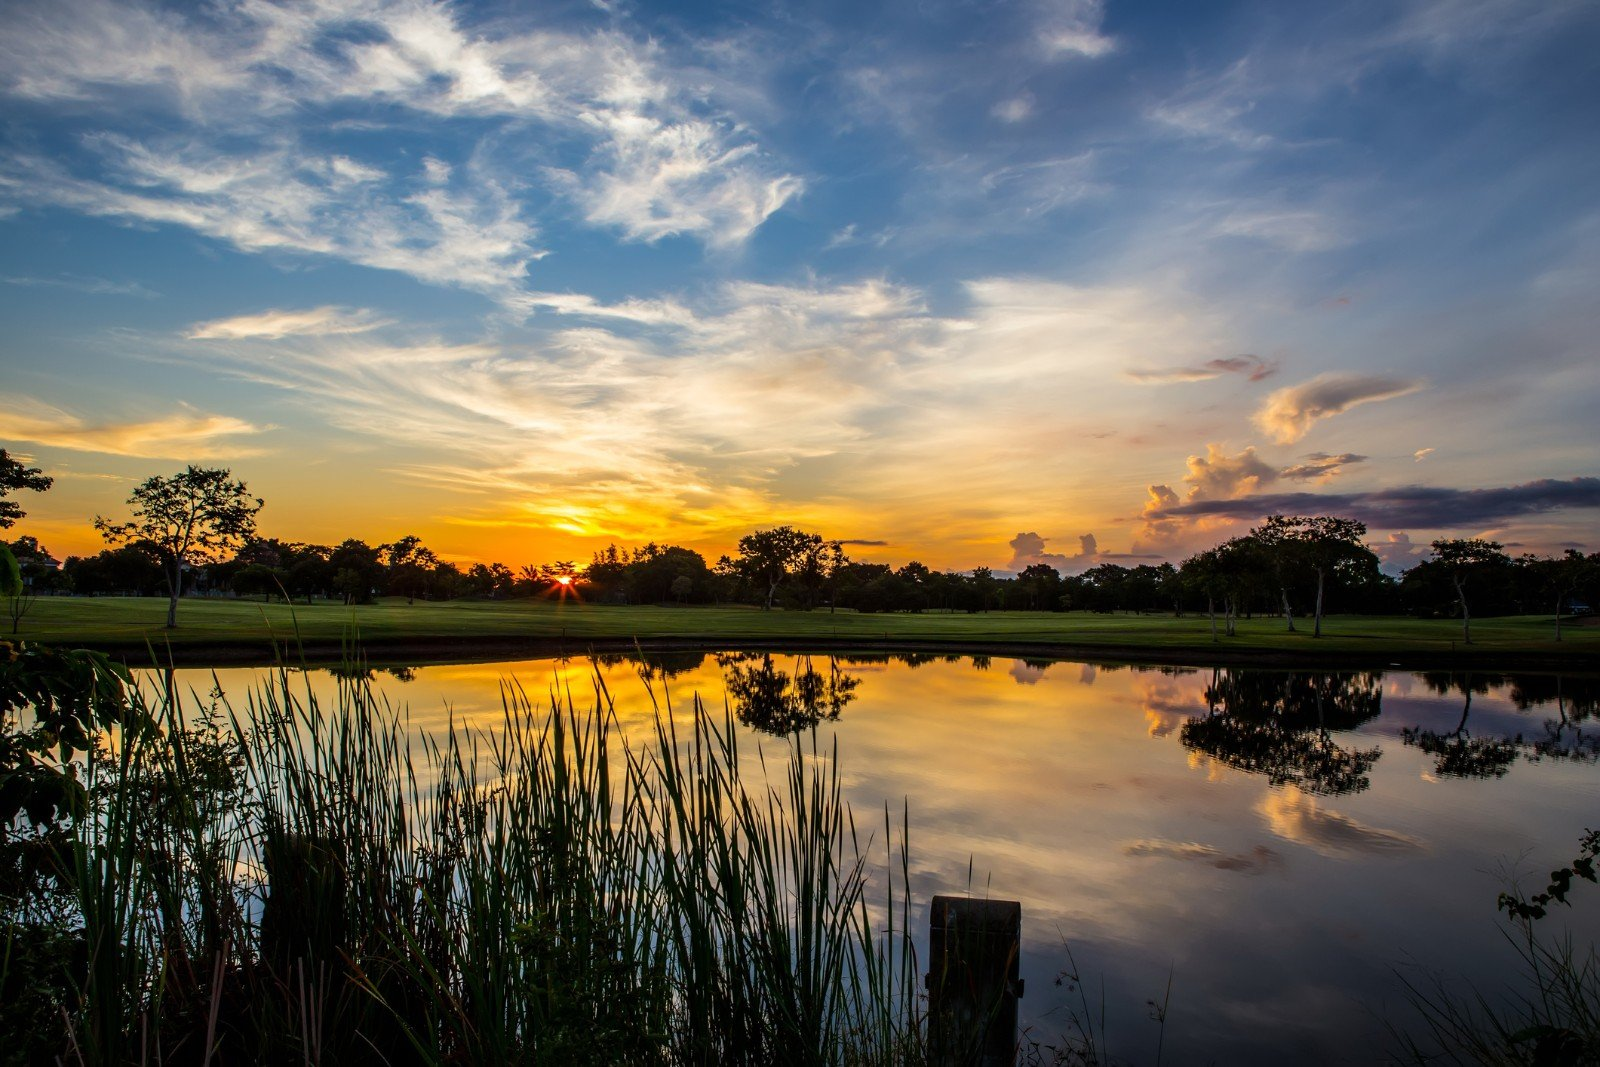 Sunset reflection on the water in Melbourne, FL